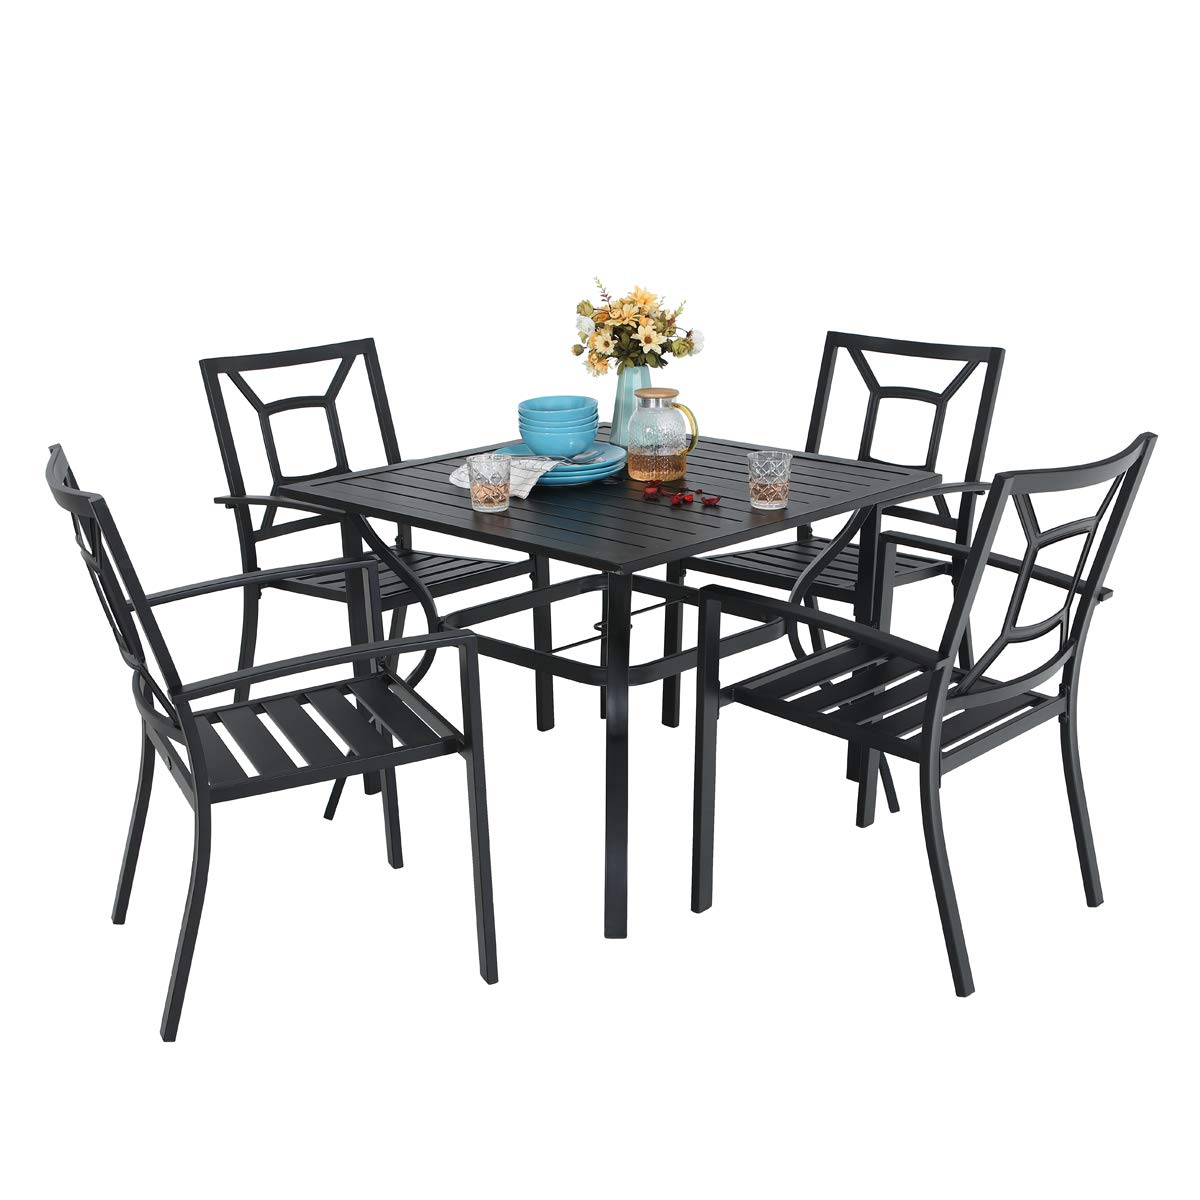 PHI VILLA Patio Dining Table and Chairs Set of 5